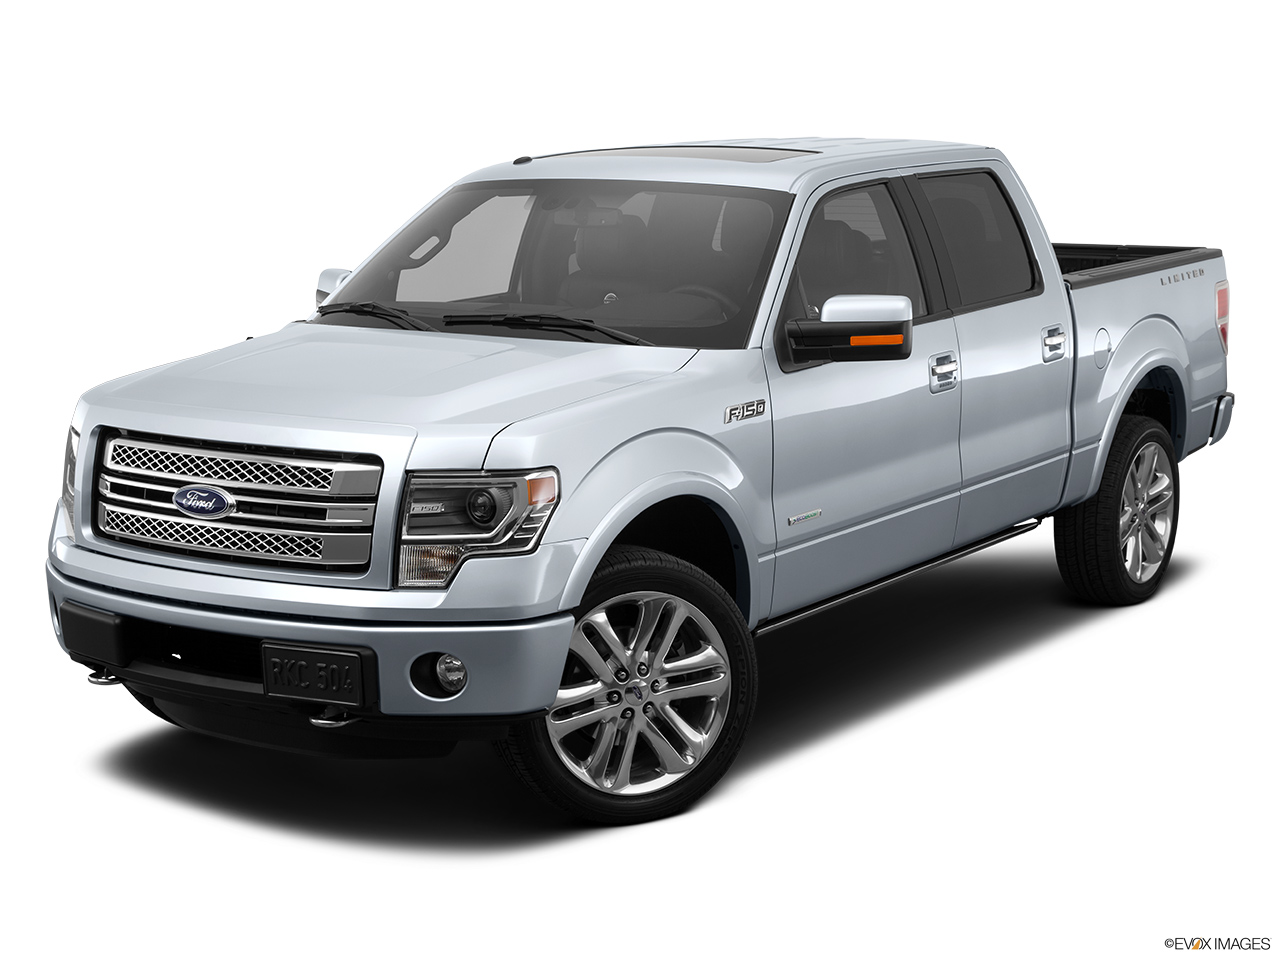 2014 ford f 150 4wd supercrew 145 limited. Black Bedroom Furniture Sets. Home Design Ideas